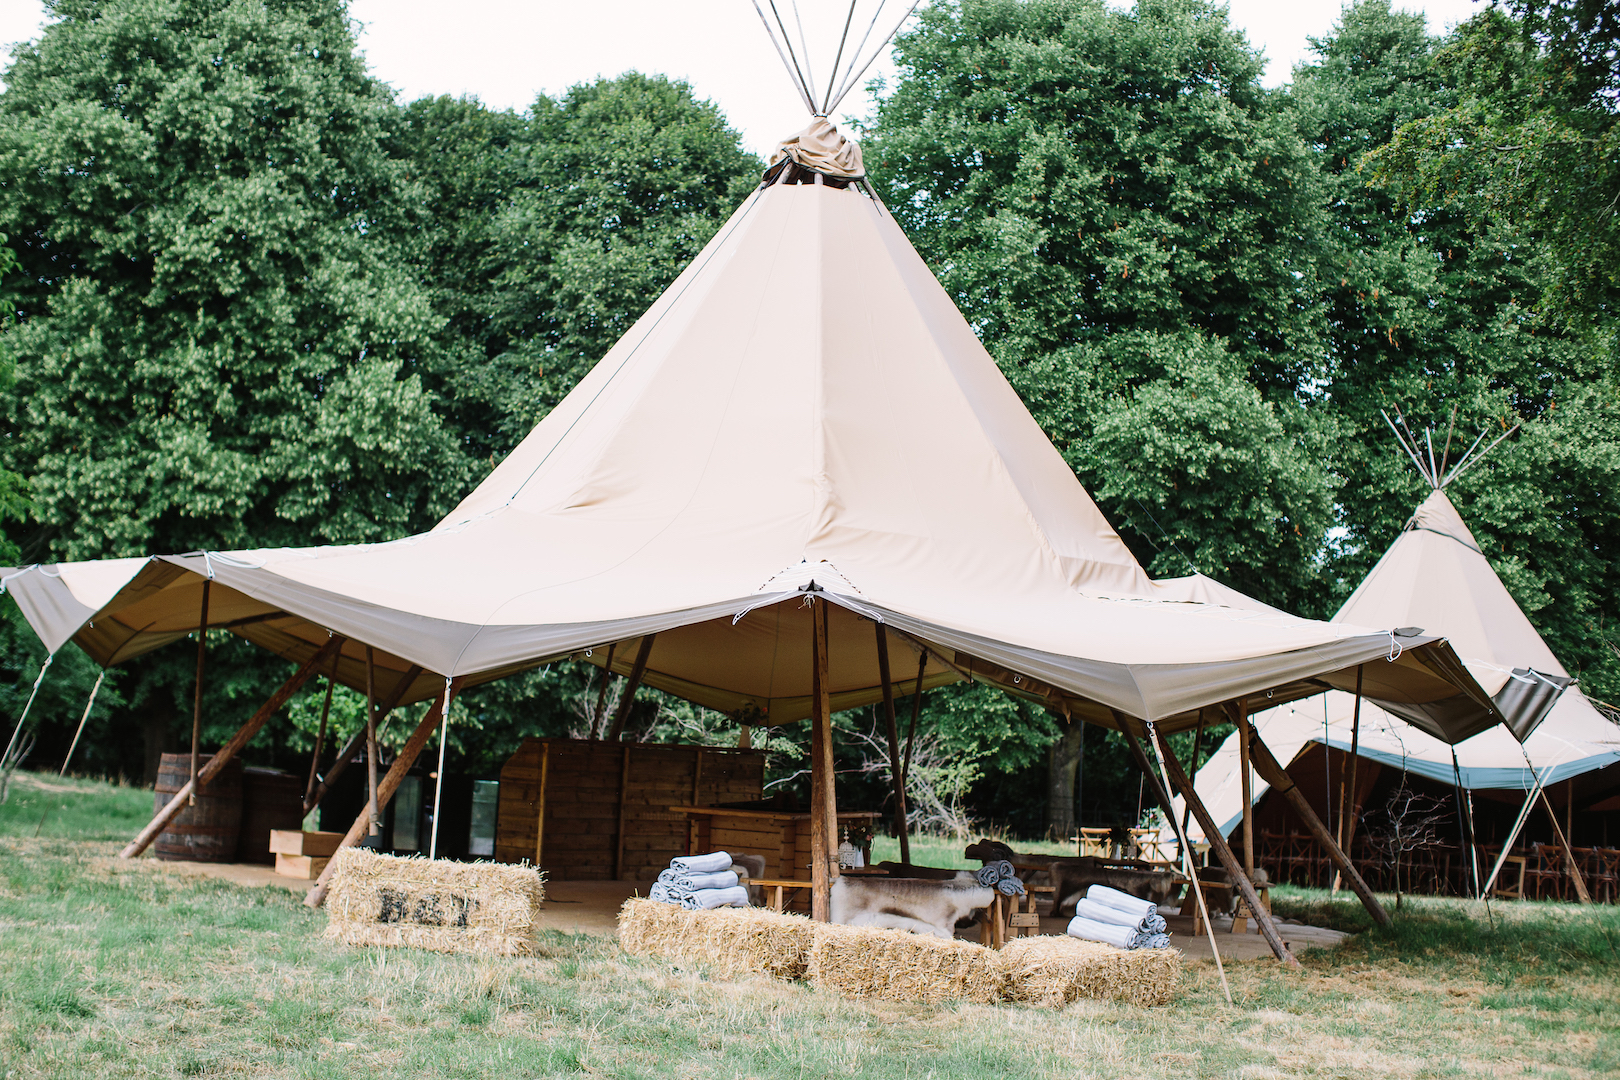 Brennan & Tom's PapaKåta Teepee Wedding, Cornwell Manor: Witches Hat